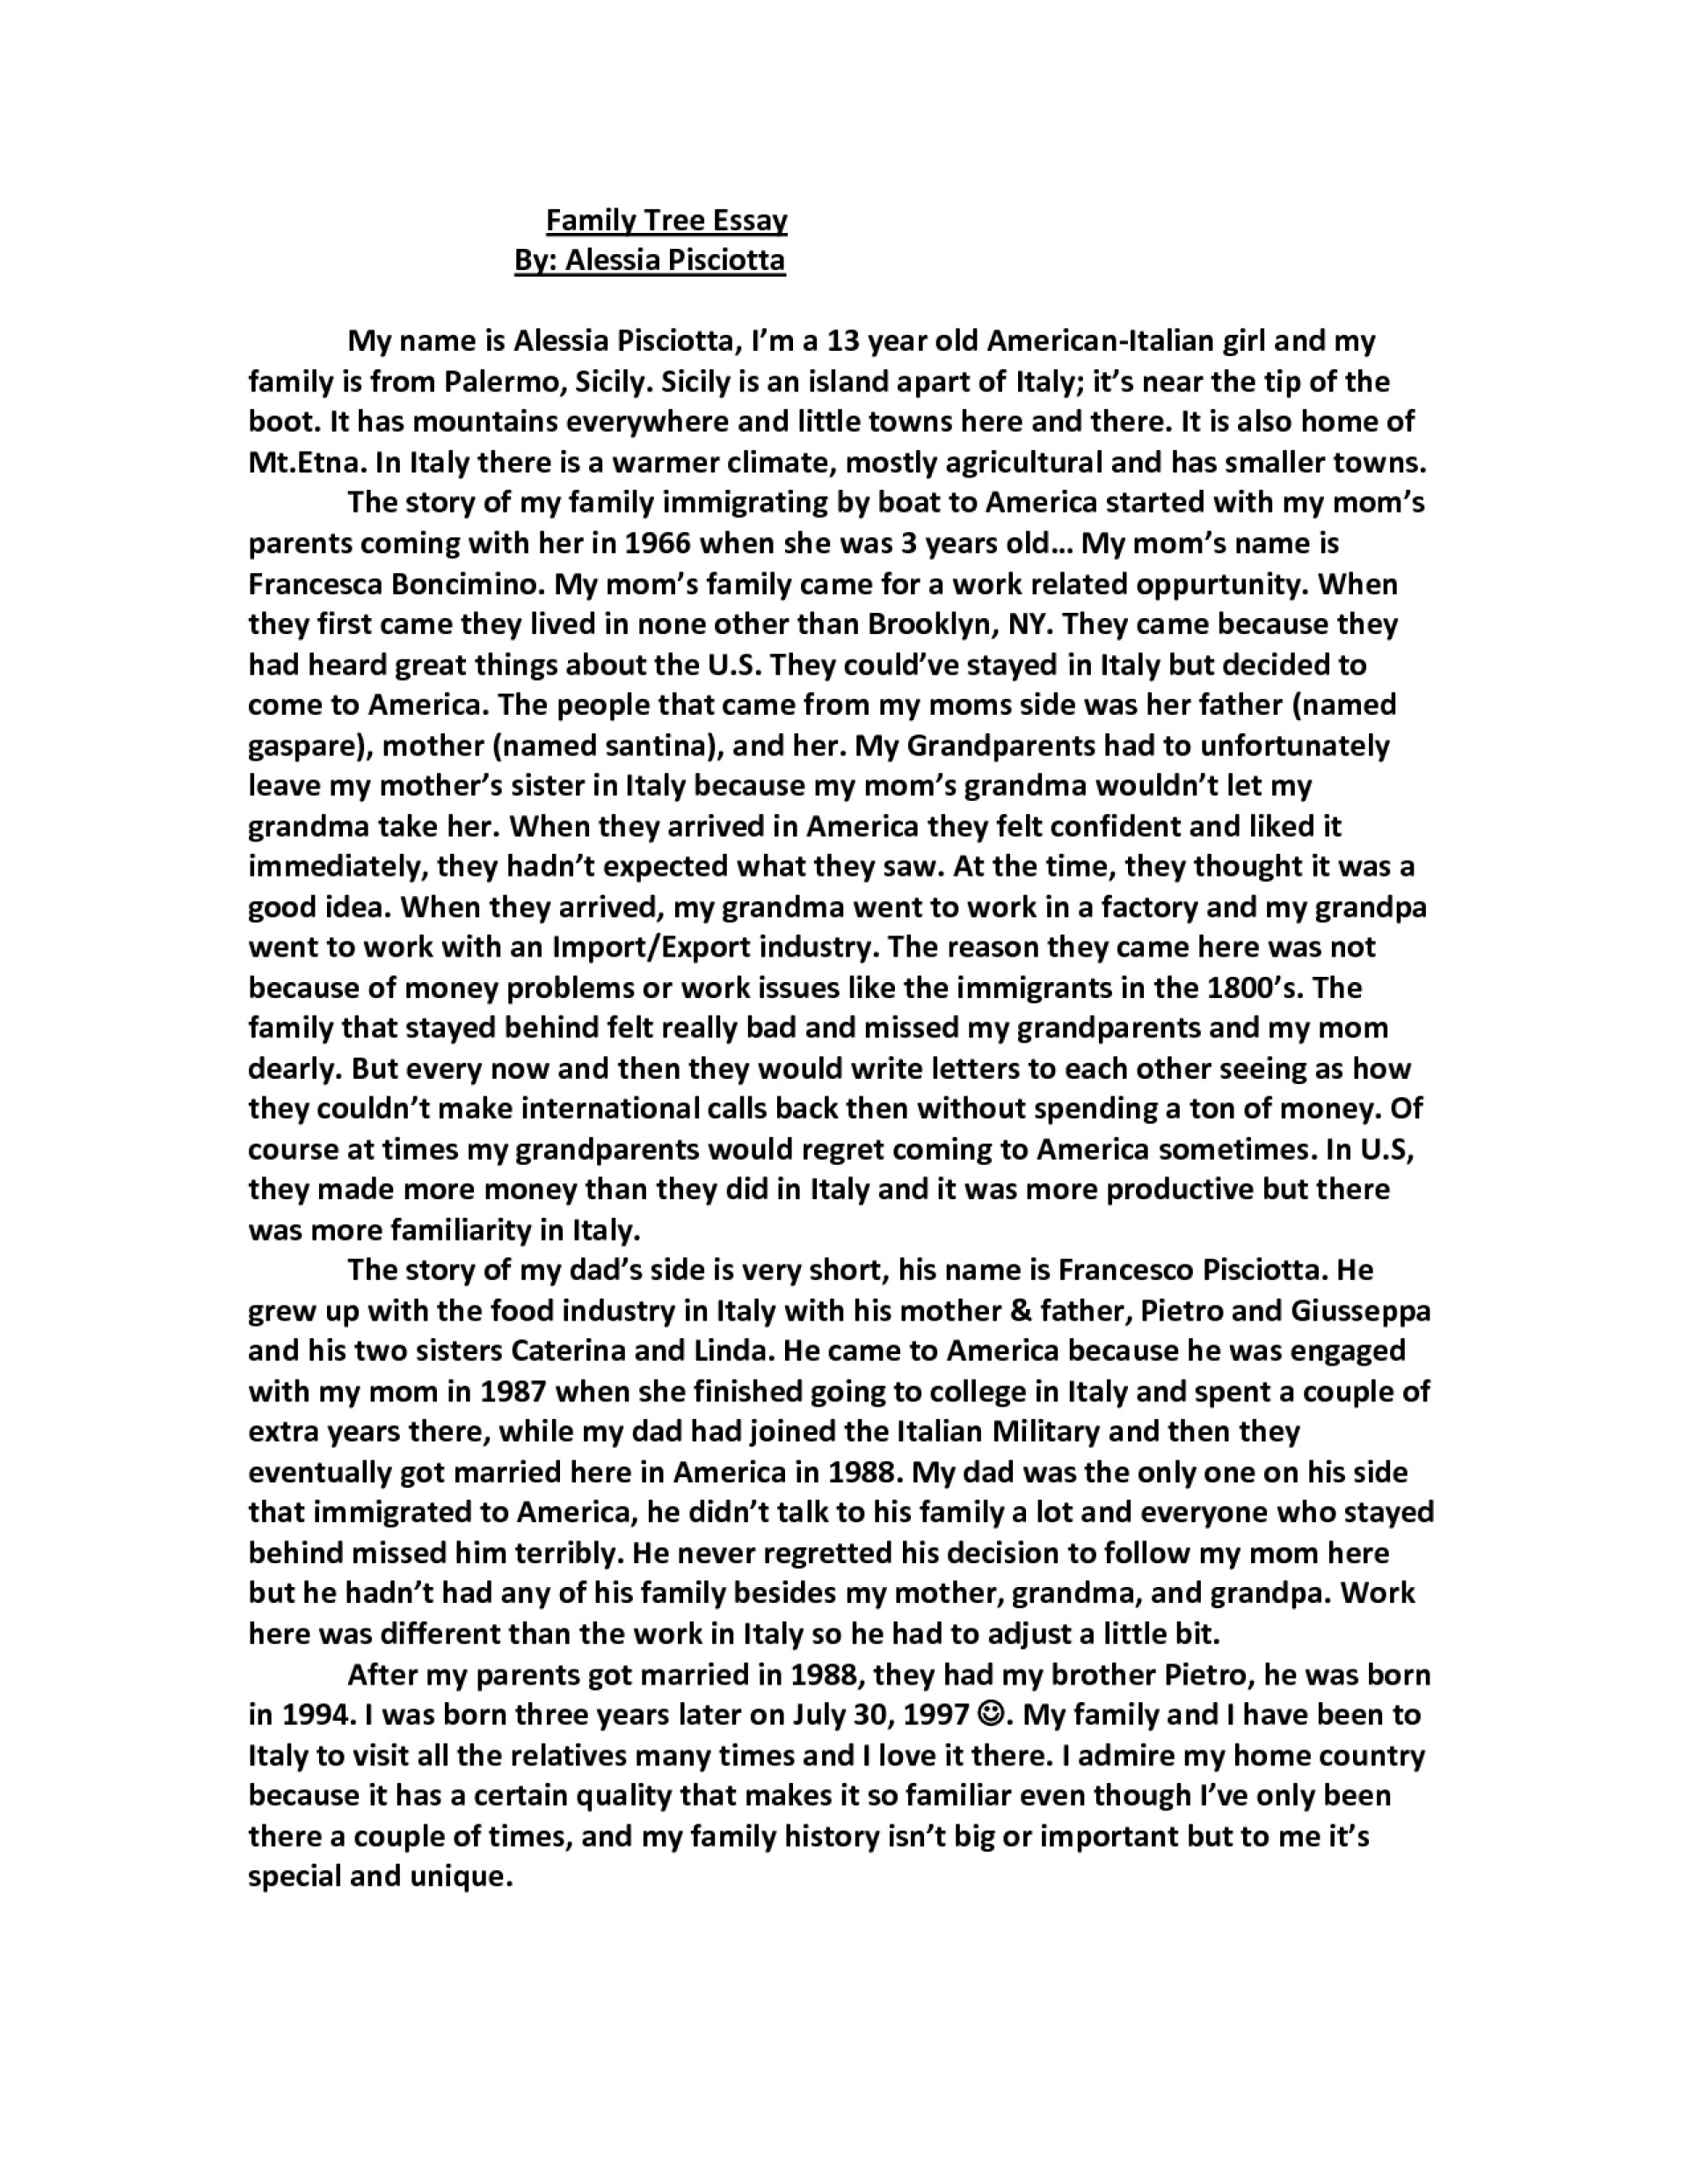 003 Essay Example My Family Tree How To Write An About Writing In English Po4ax Our I Love For Class Singular Narrative Ideas Conclusion Life Topics 1920